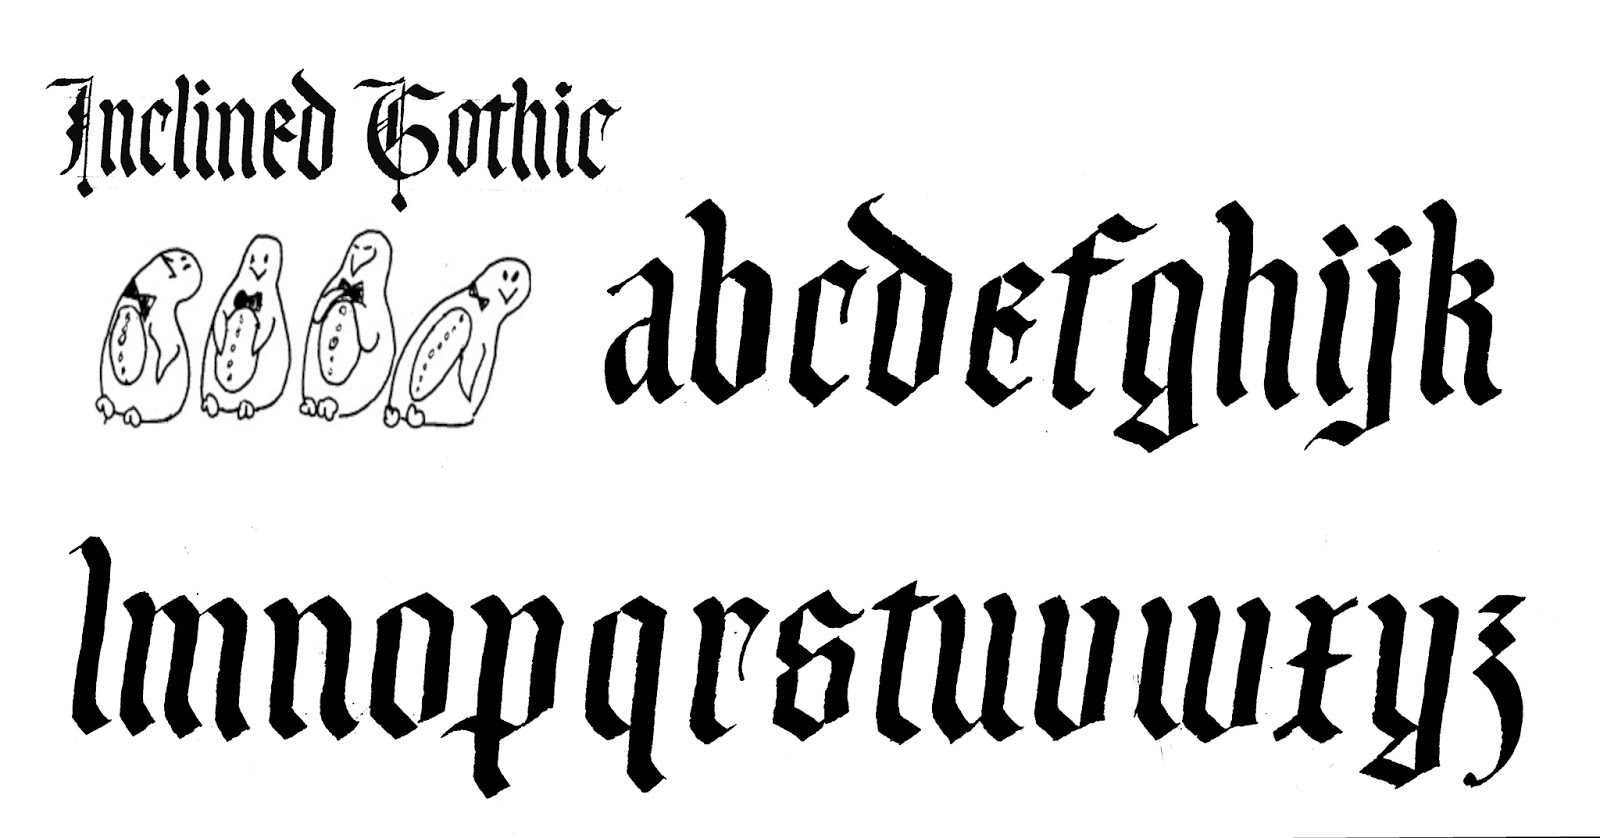 Margaret Shepherd Calligraphy Blog 187 Inclined Gothic